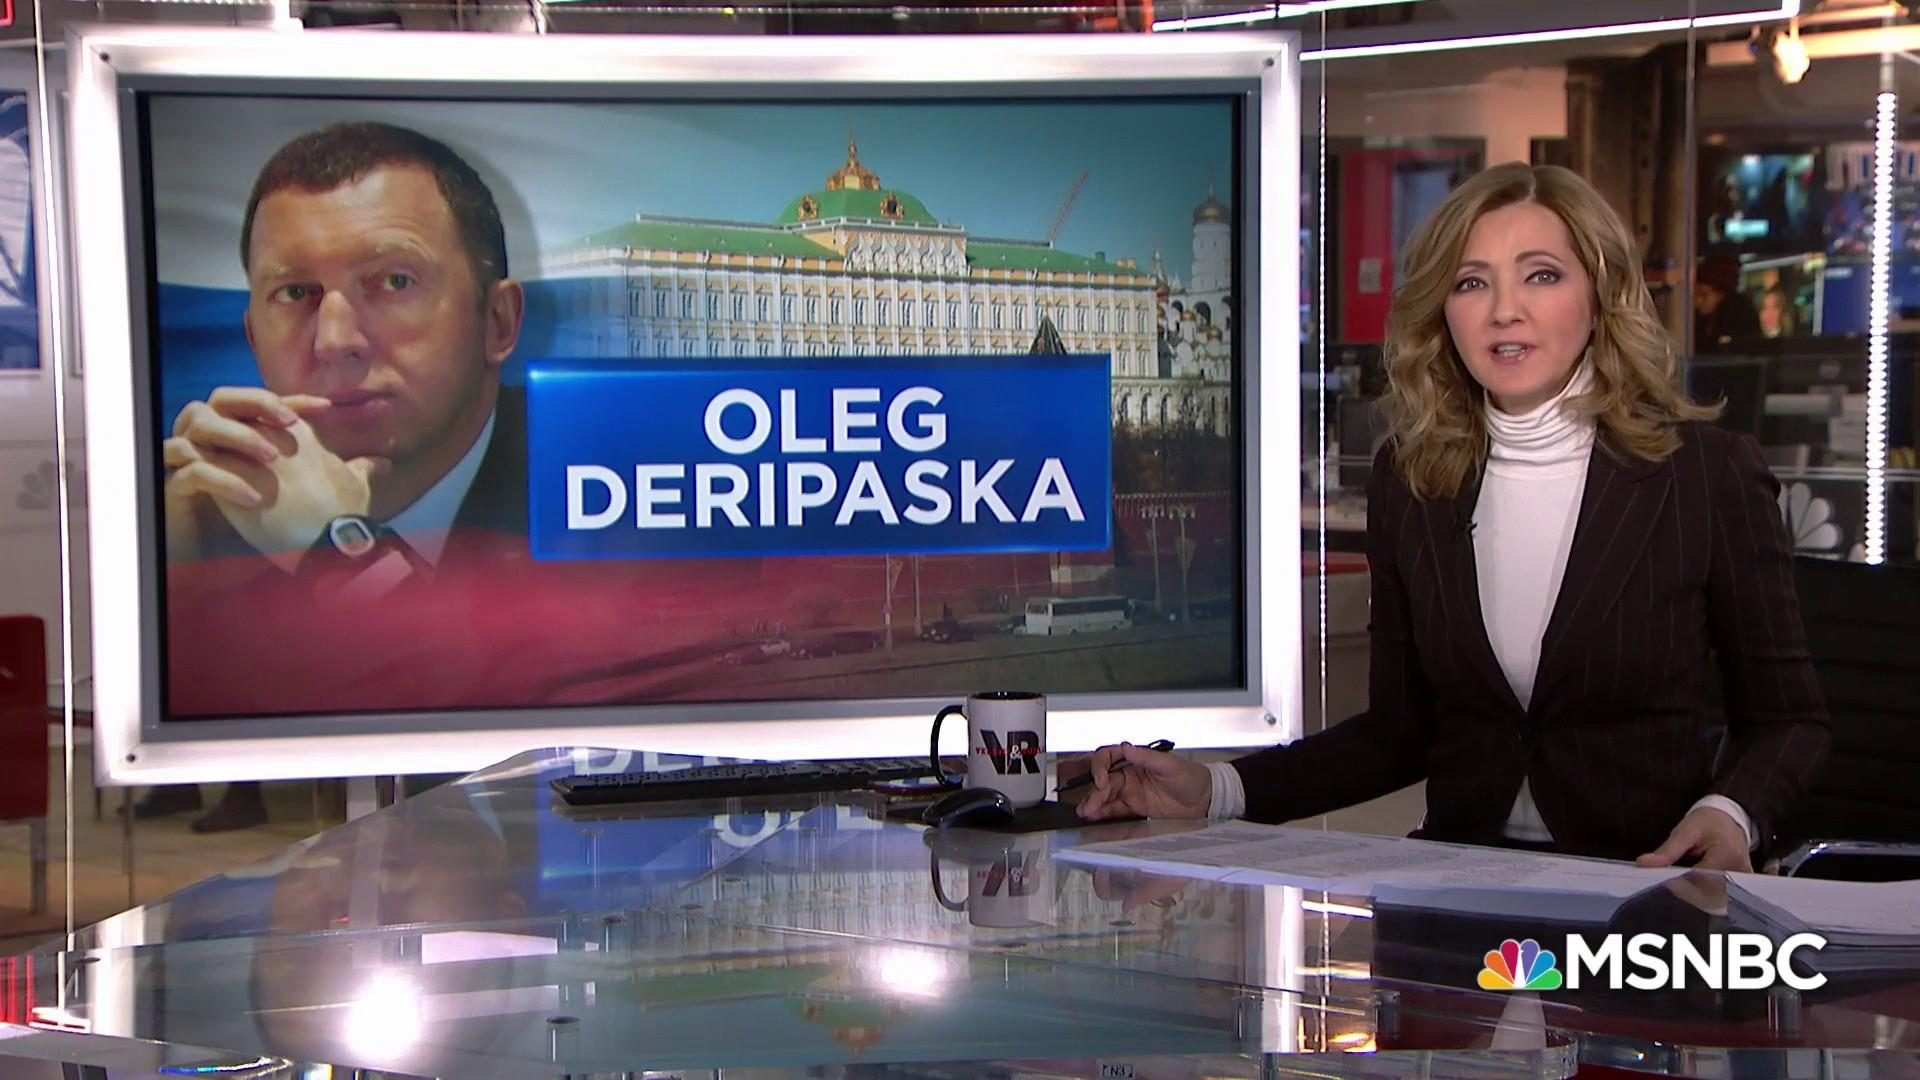 Who is Oleg Deripaska?